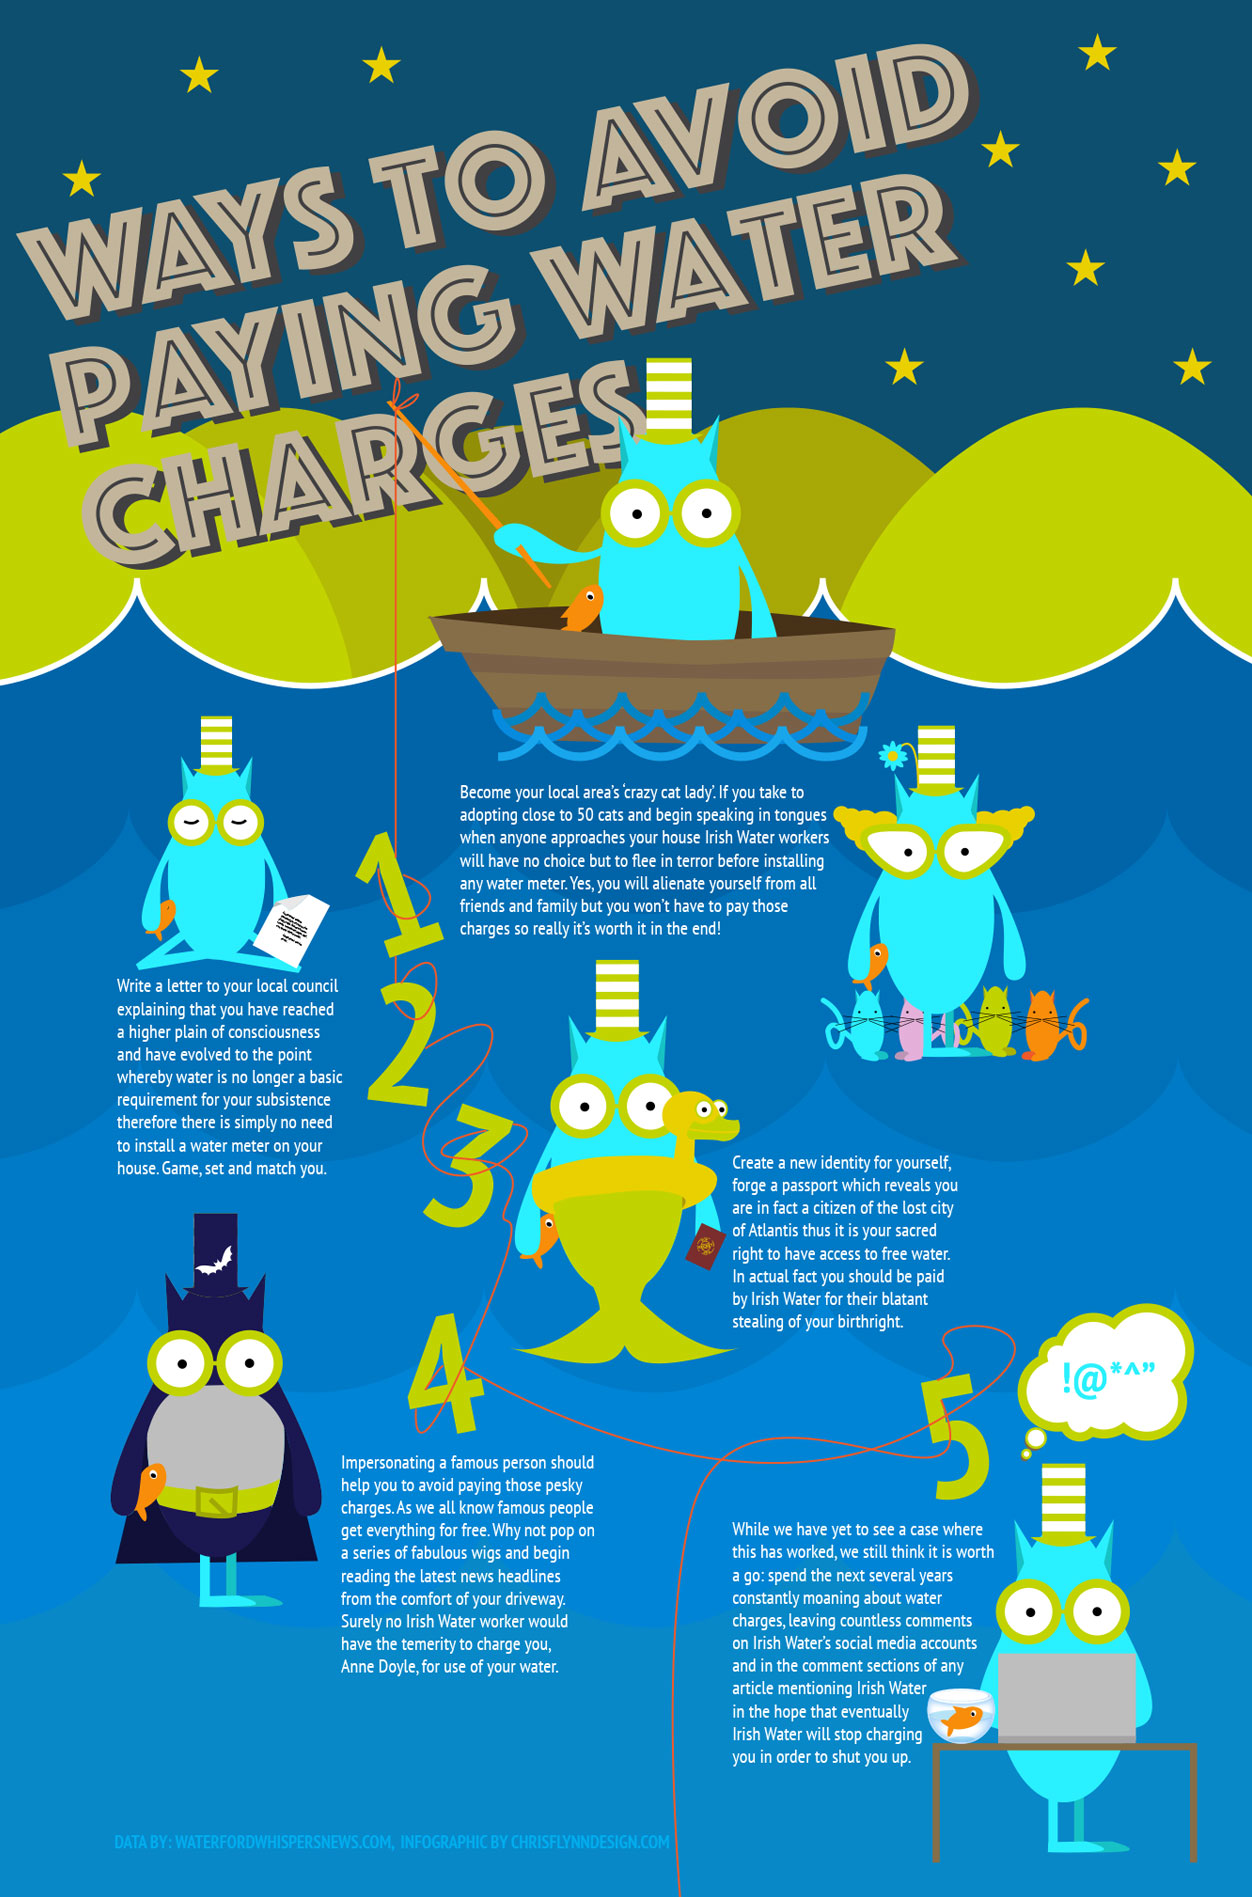 Ways to avoid paying water charges infographic design.